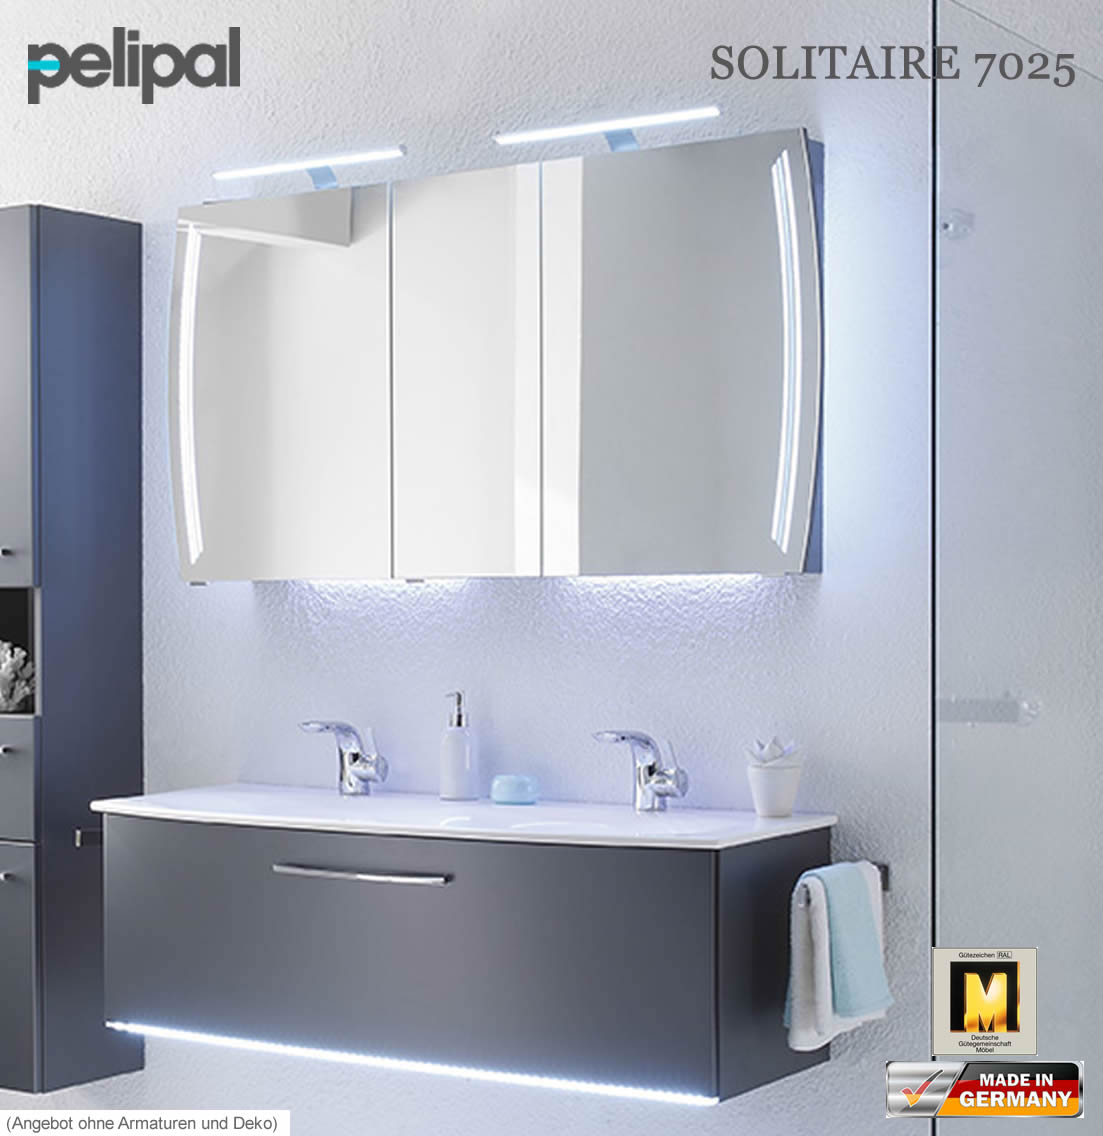 pelipal solitaire 7025 badm bel set mit 1220 mm doppelwaschtisch v3 8 impuls home. Black Bedroom Furniture Sets. Home Design Ideas